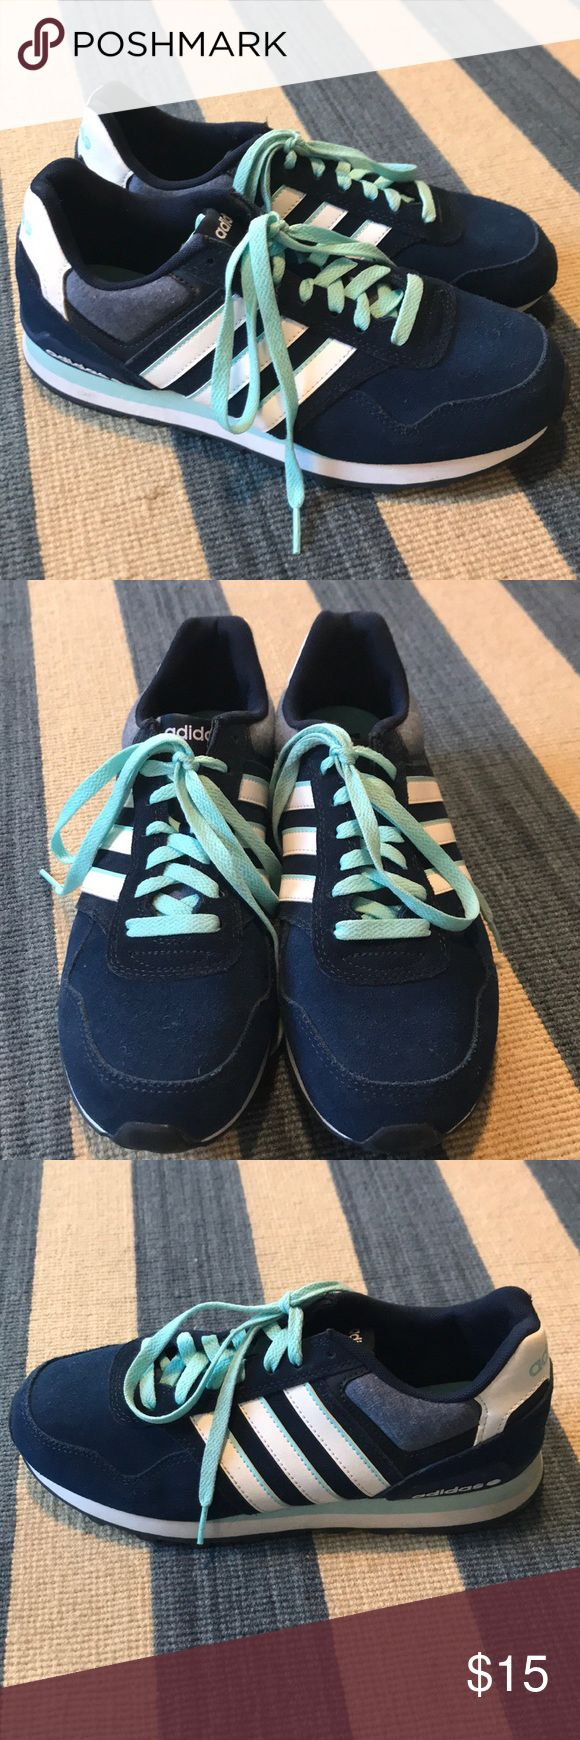 Adidas Neo Label Blue/White Sneakers, Ortholite Adidas Neo Label sneakers in navy blue/baby blue white. Very comfortable with Ortholite foam insoles.  Worn outside once. In excellent condition. adidas Shoes Sneakers